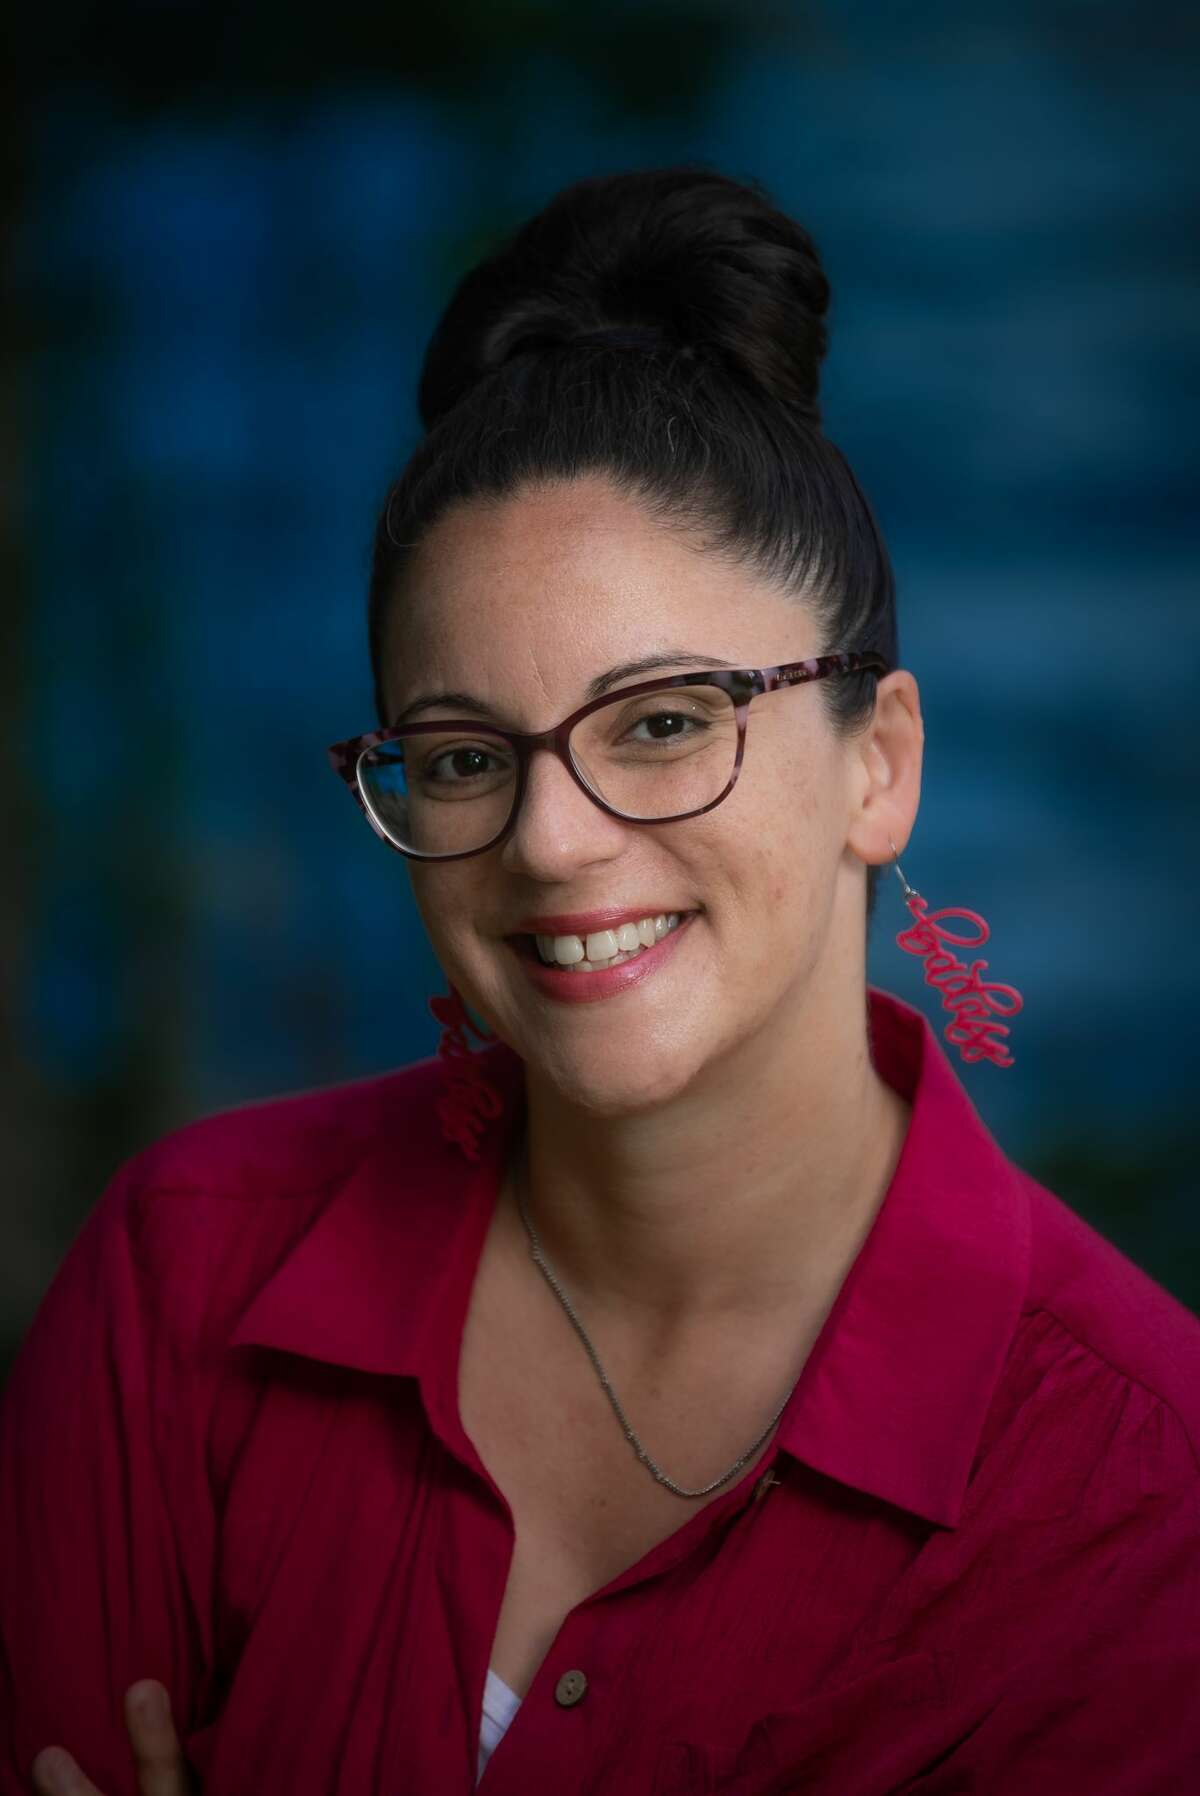 Jessica N. Pabón-Colón, an associate Professor in Department of Women's, Gender, and Sexuality Studies at SUNY New Paltz, was approved for tenure in September 2020.